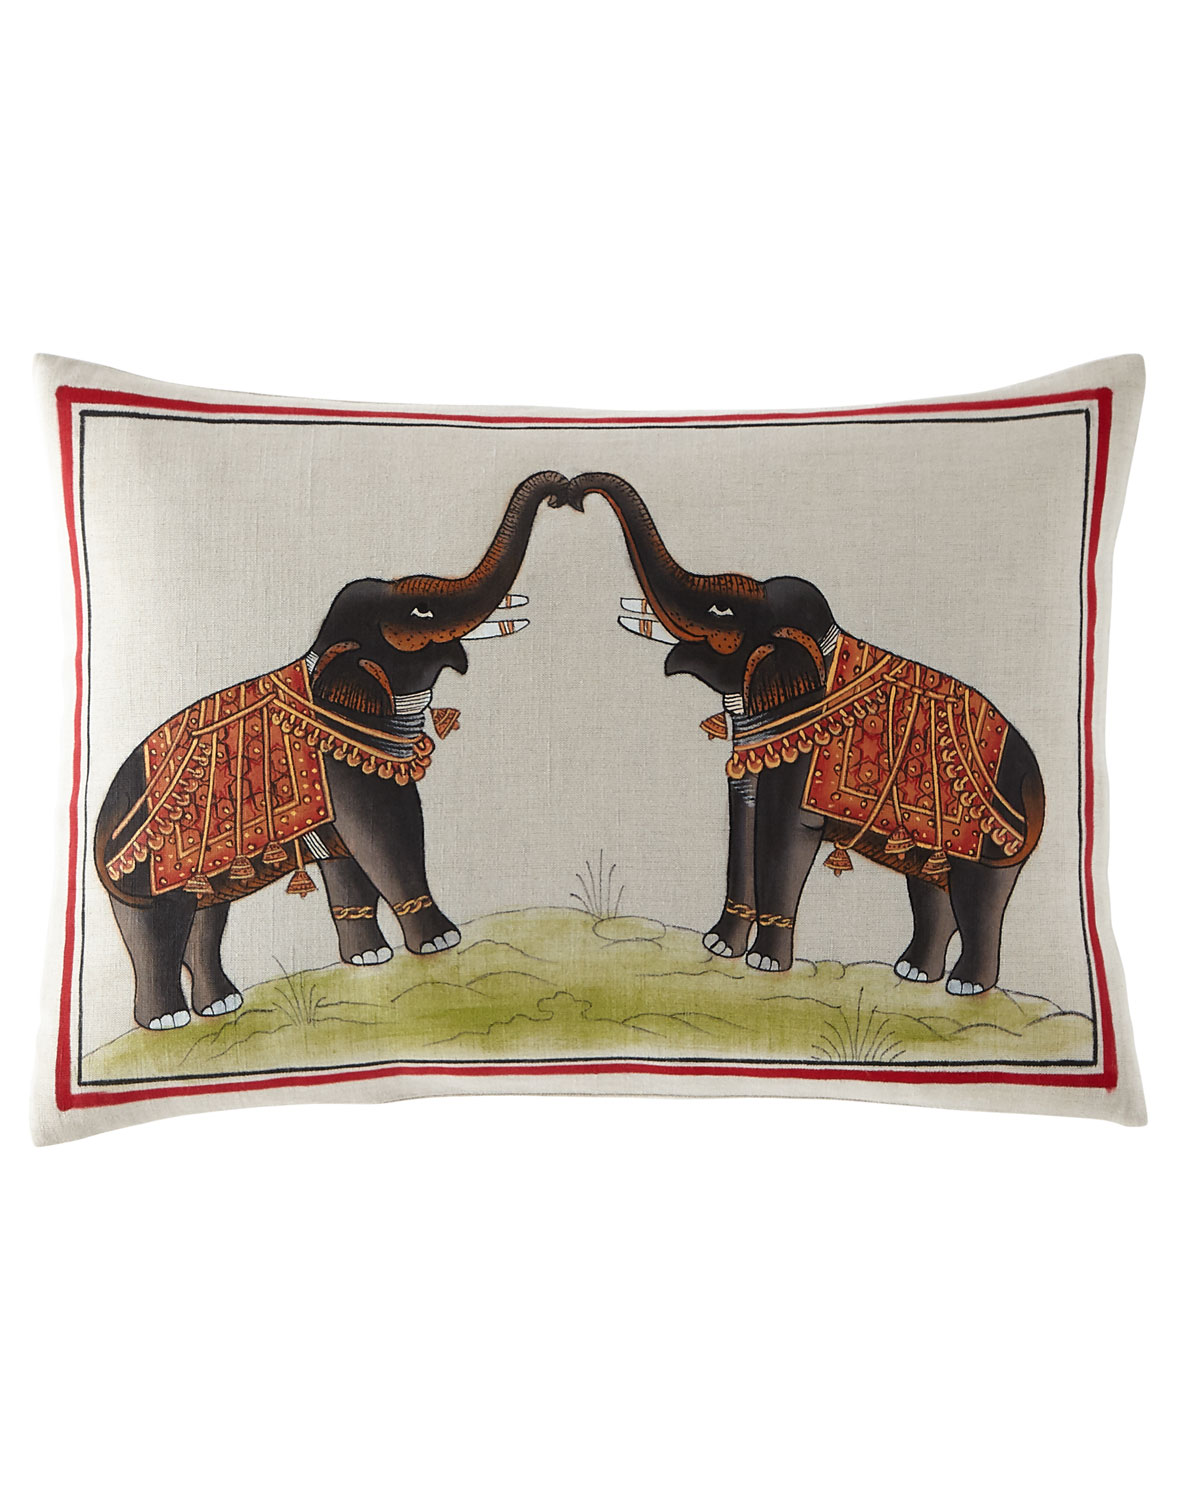 Hand-Painted Elephants Pillow, 12